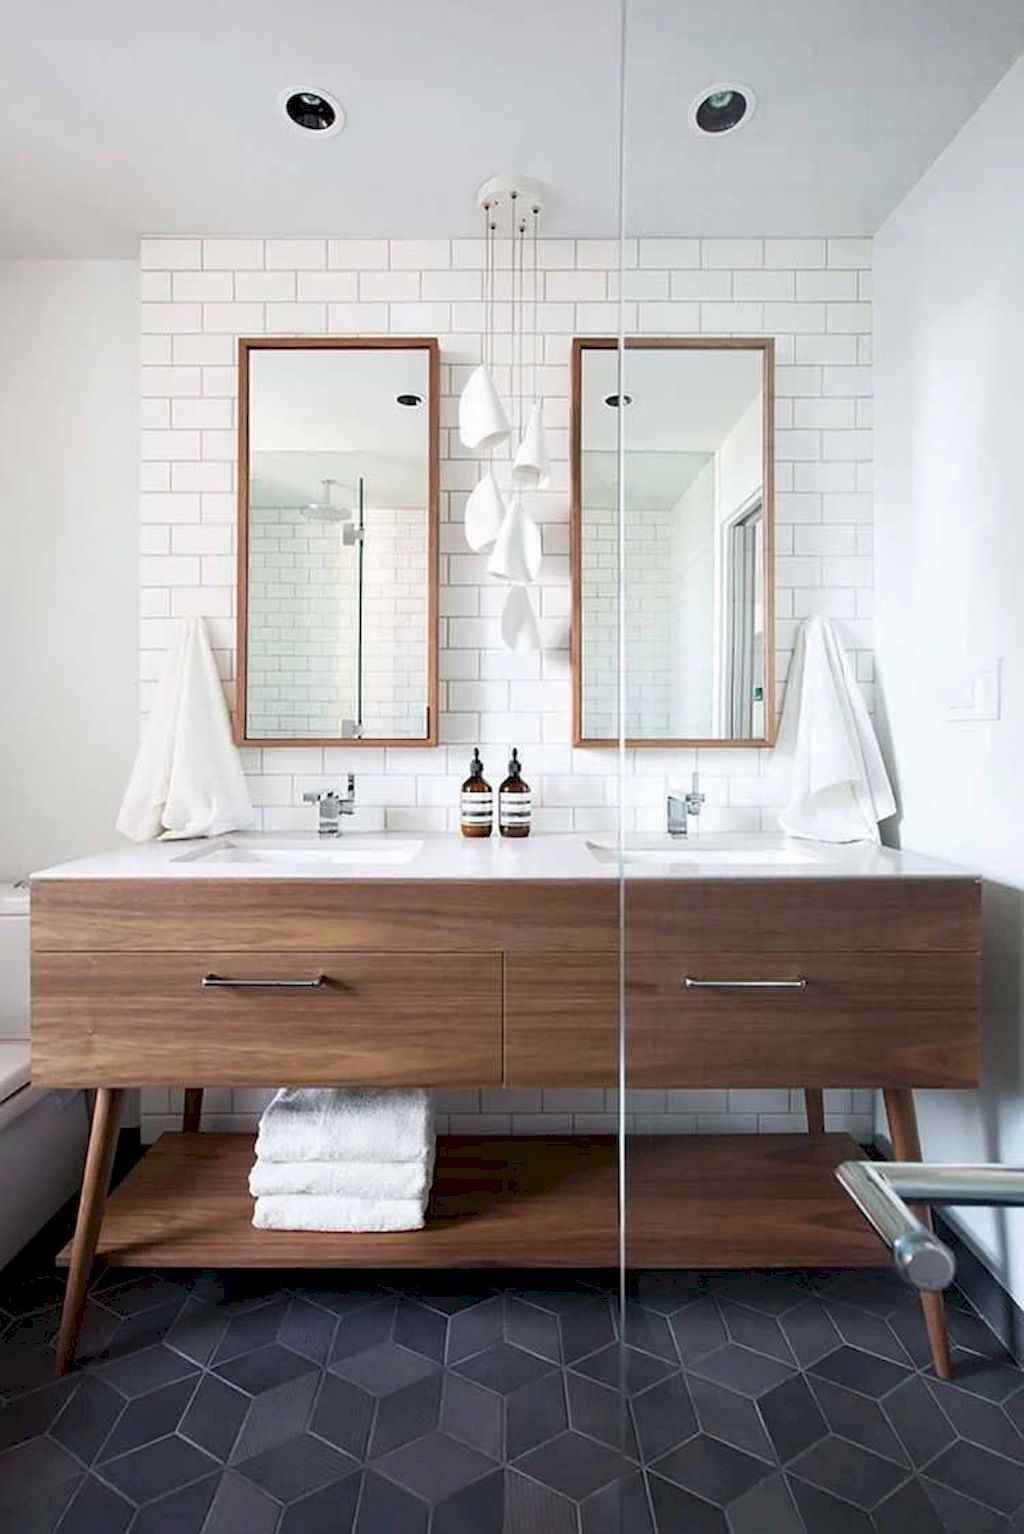 111 awesome small bathroom remodel ideas on a budget (93)